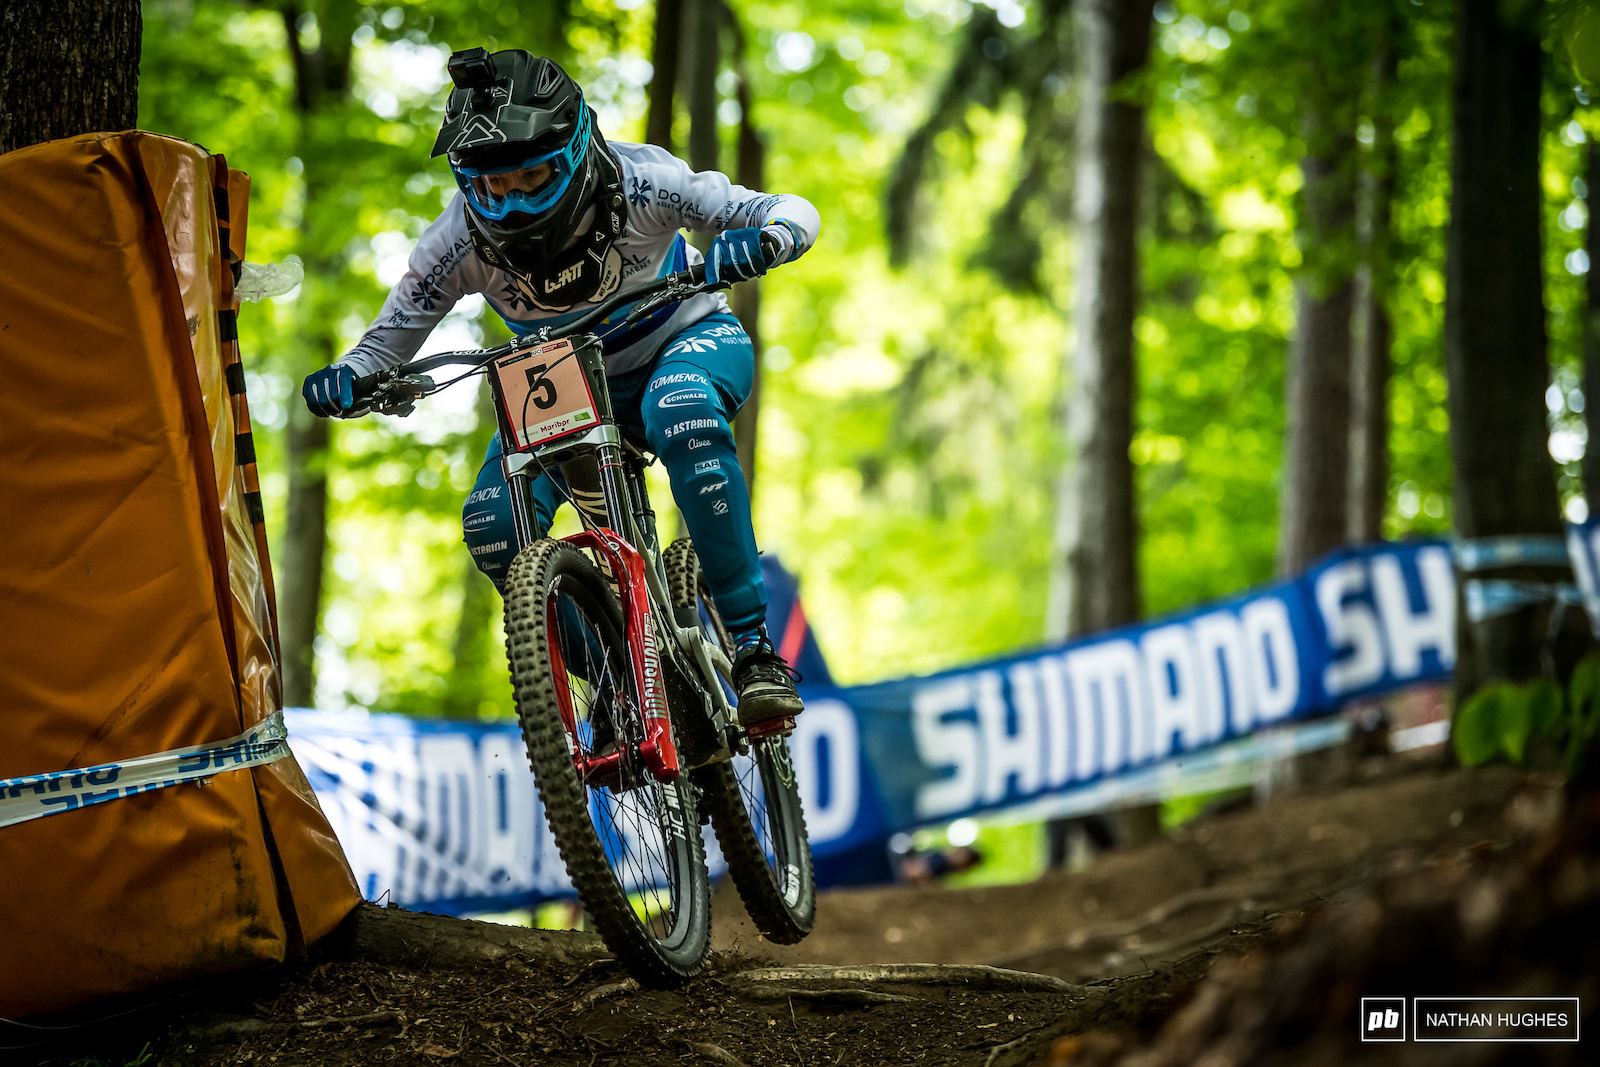 Monika Hrastnik went and swiped herself a podium spot just a couple of hours from her hometown here in Slovenia.